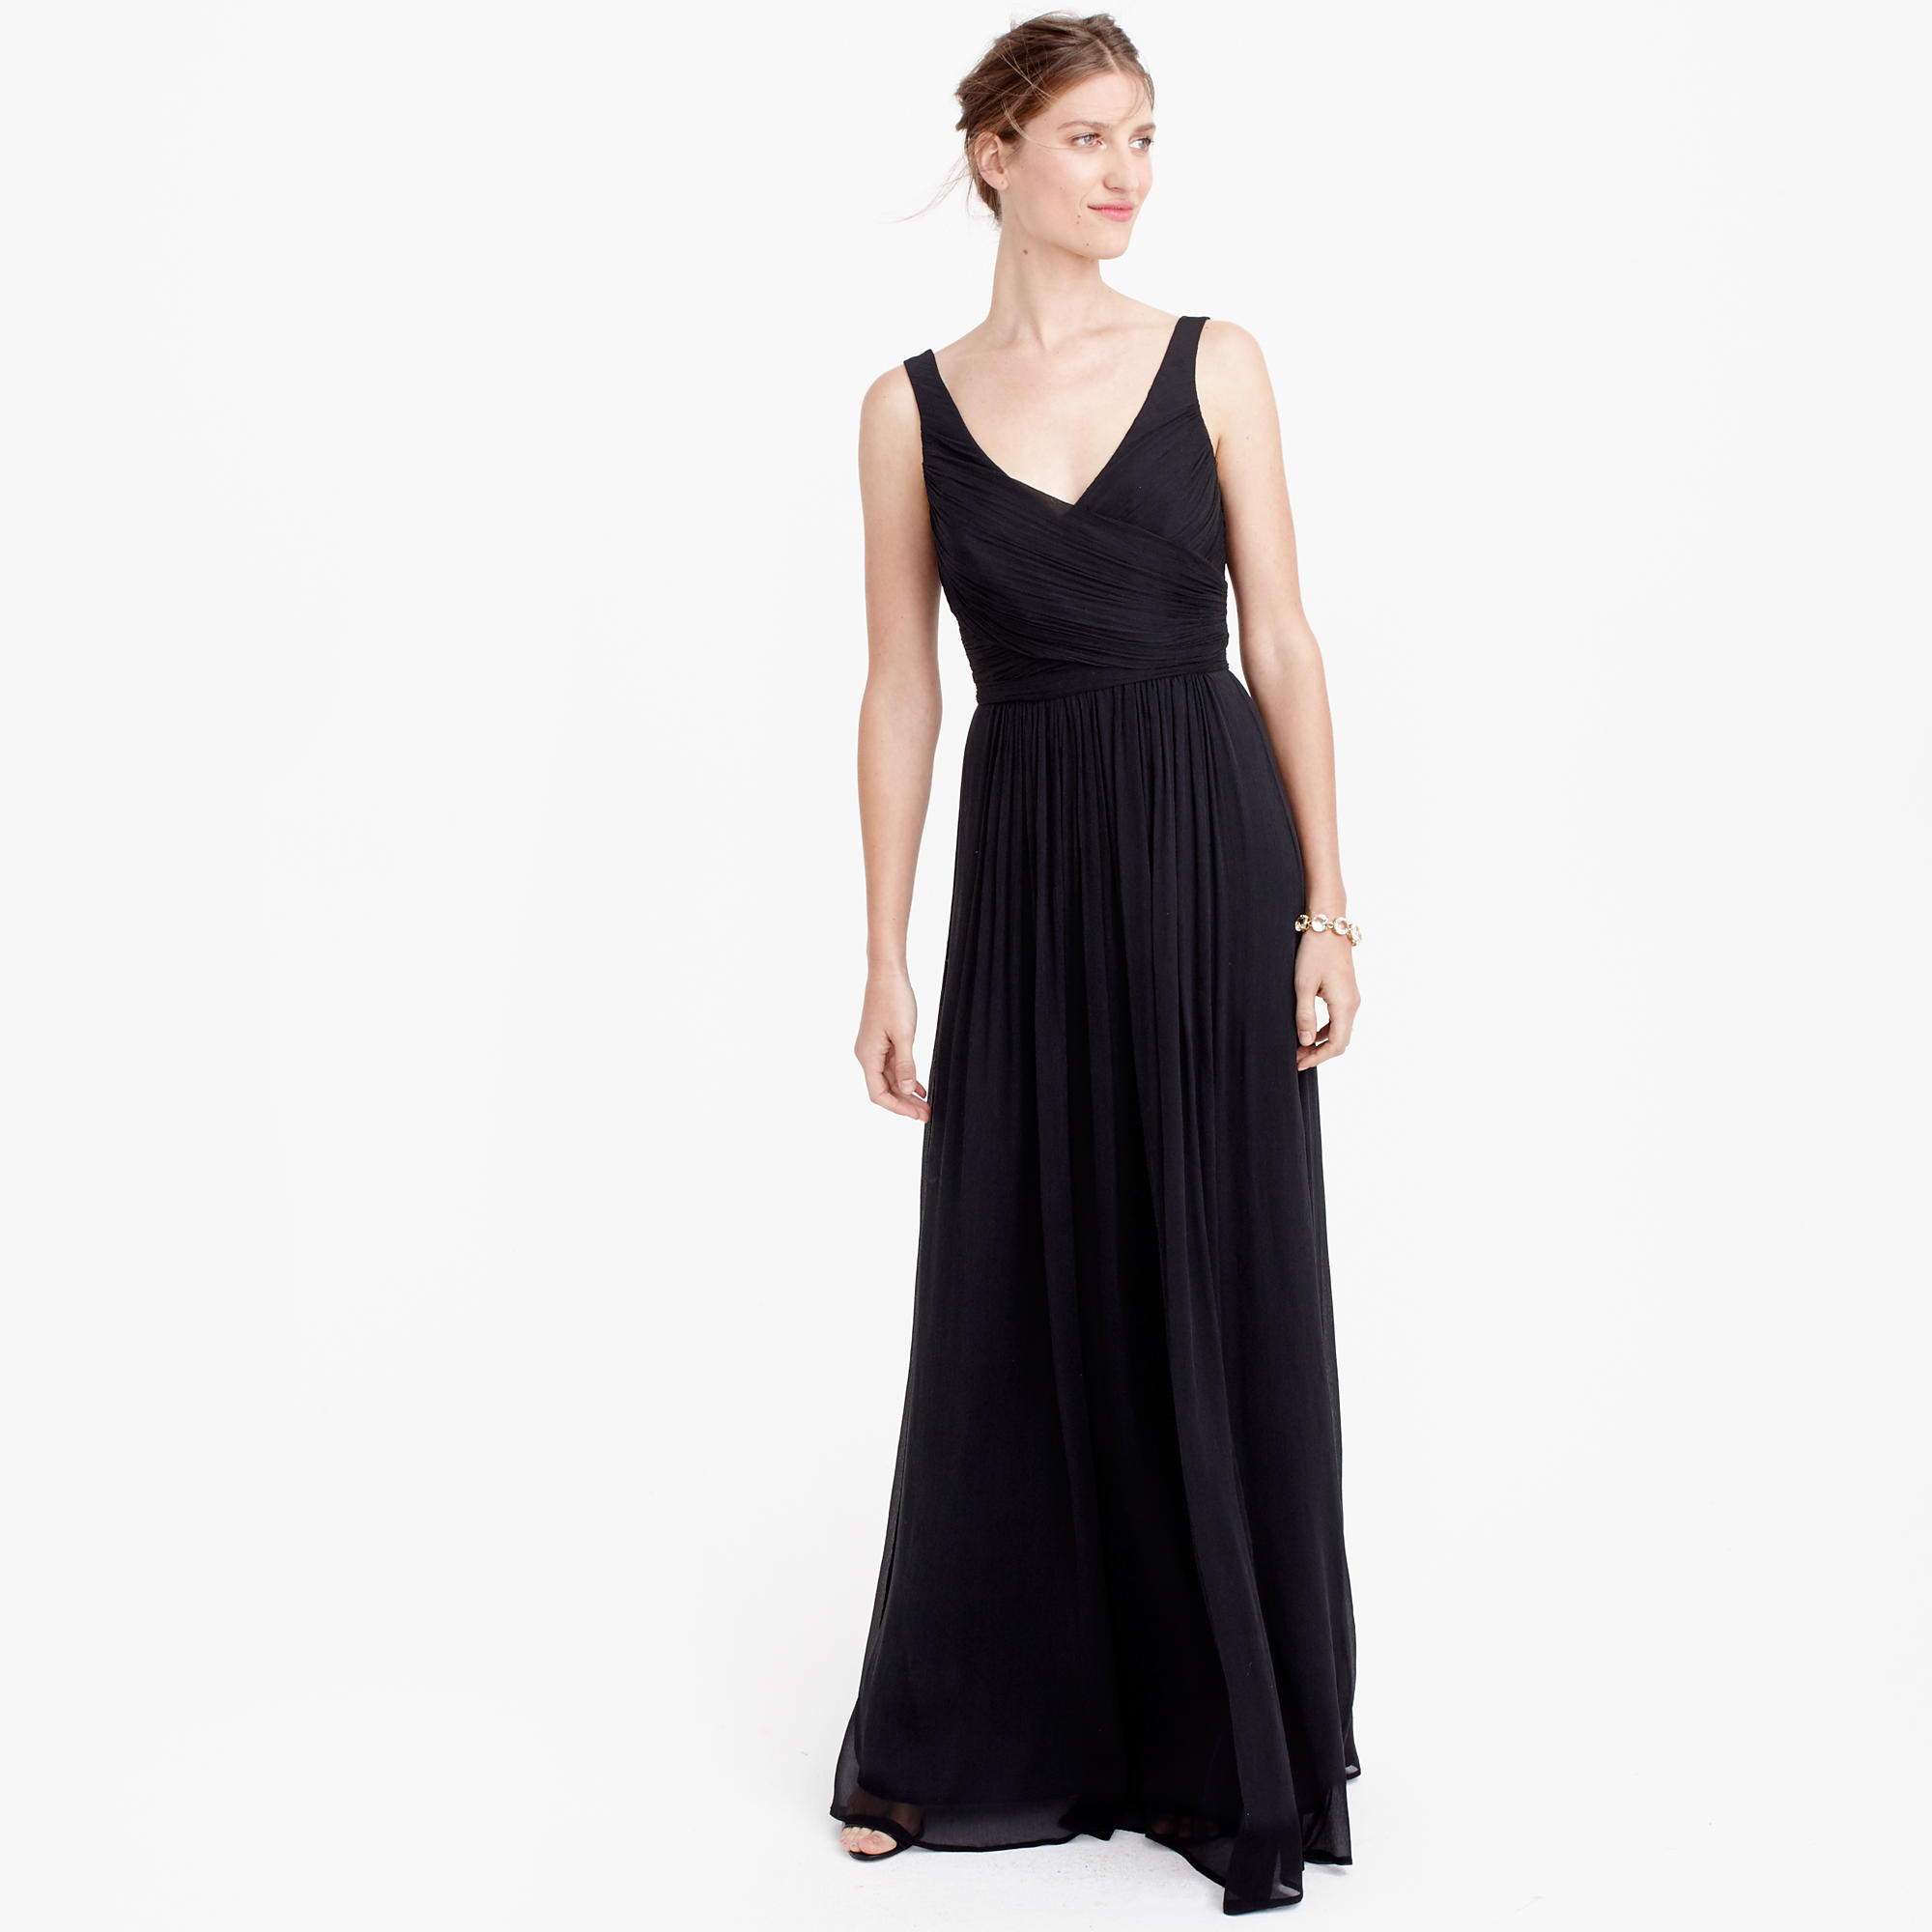 Heidi long dress in silk chiffon : Wedding sizes 16 to 20  J.Crew